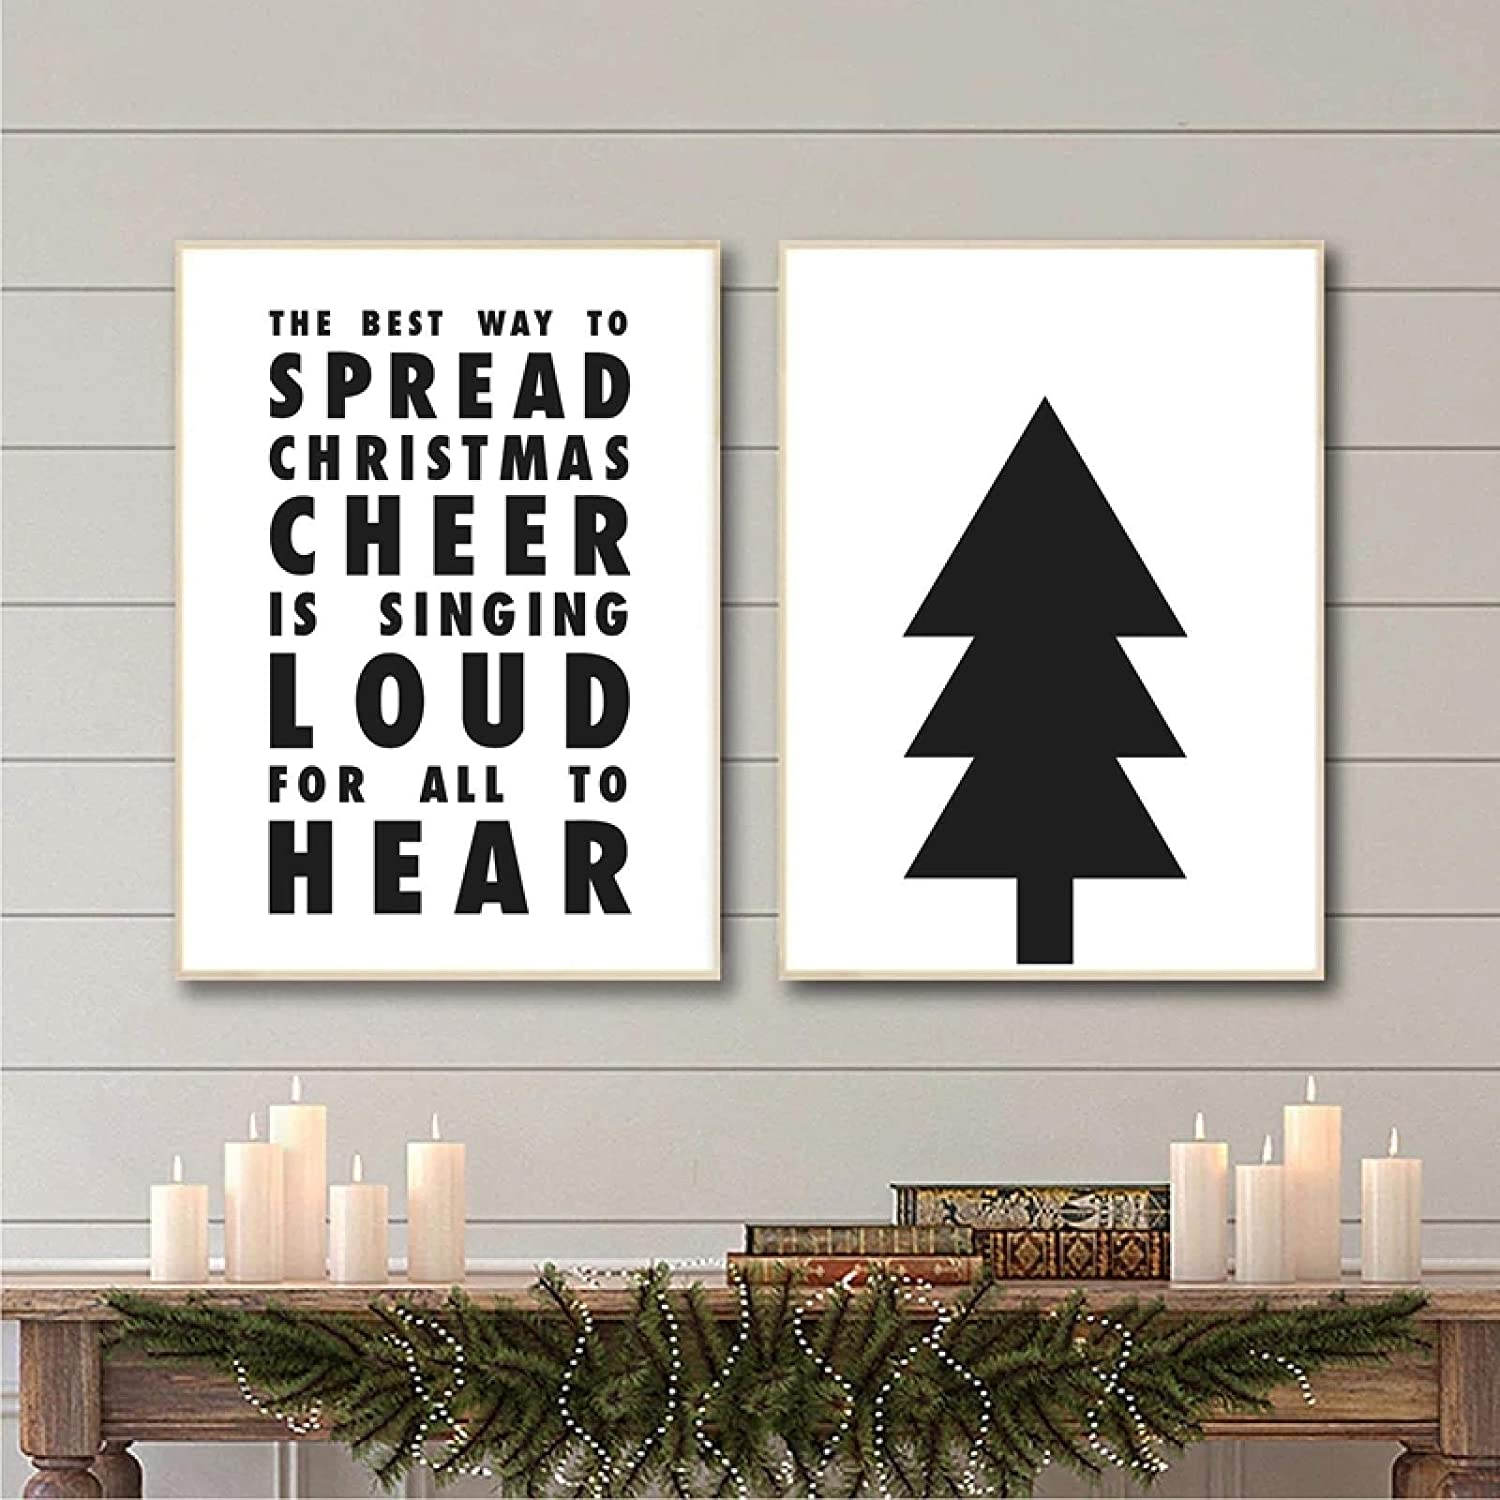 ThinkingPower Minimalist Black and White Painting Christmas Tree Elf Christmas Cheer Quote Prints Canvas Poster Home Living Room Decor (50x70cm) X2 with Frame